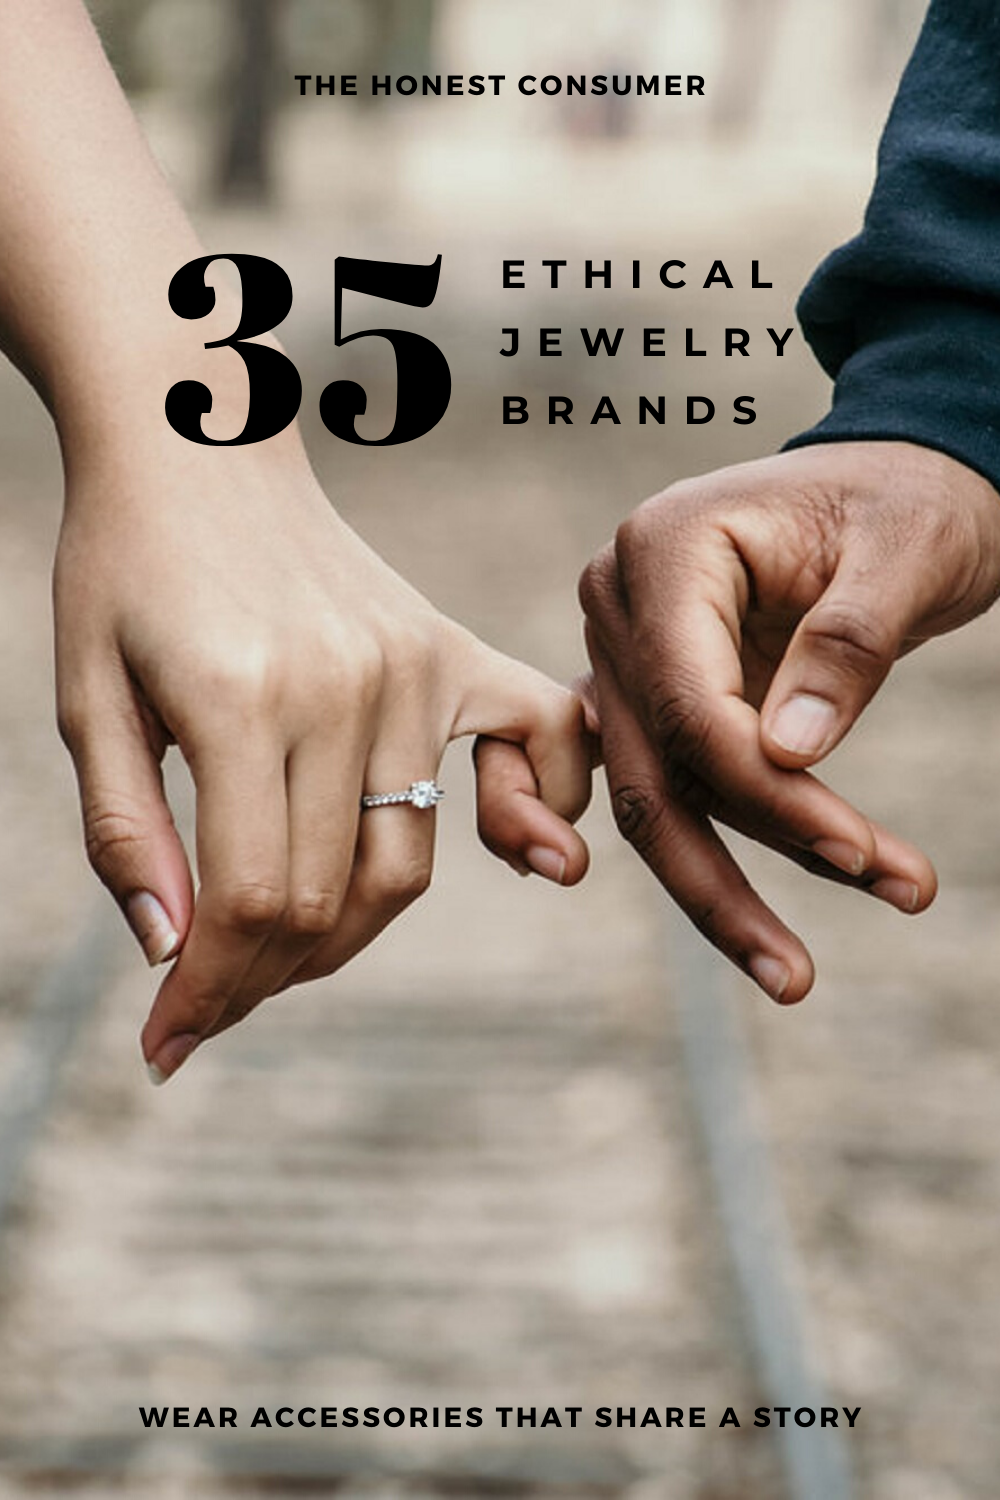 21++ Jewelry brands that give back ideas in 2021